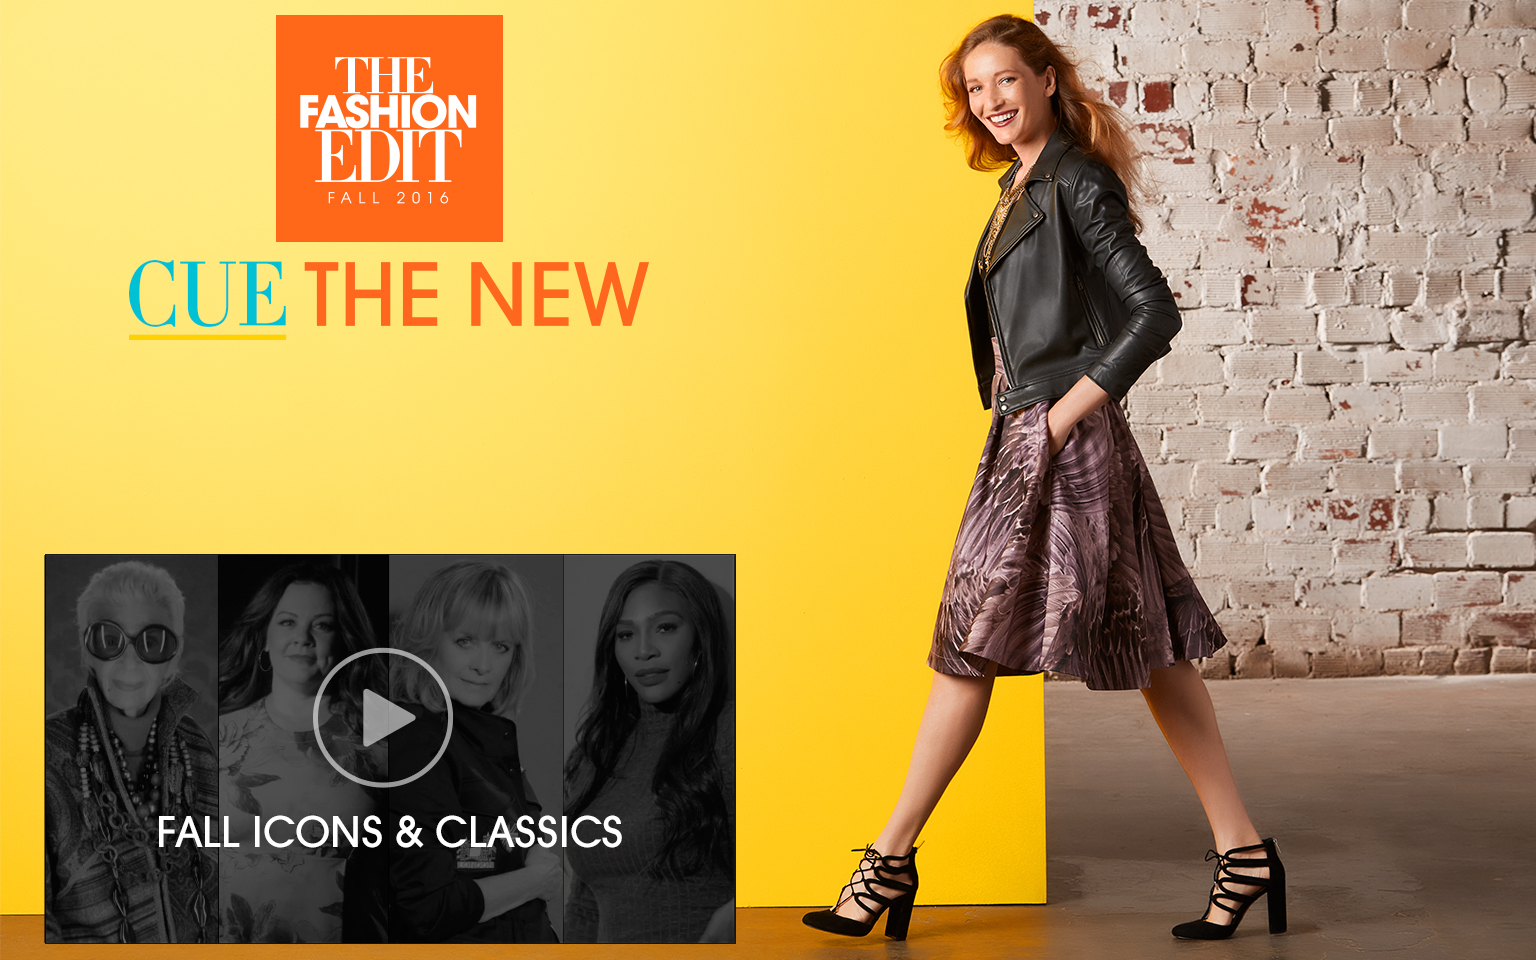 HSN Fall Fashion Edit: Kick Off - VINCE TS (8/24) - Blogs & Forums